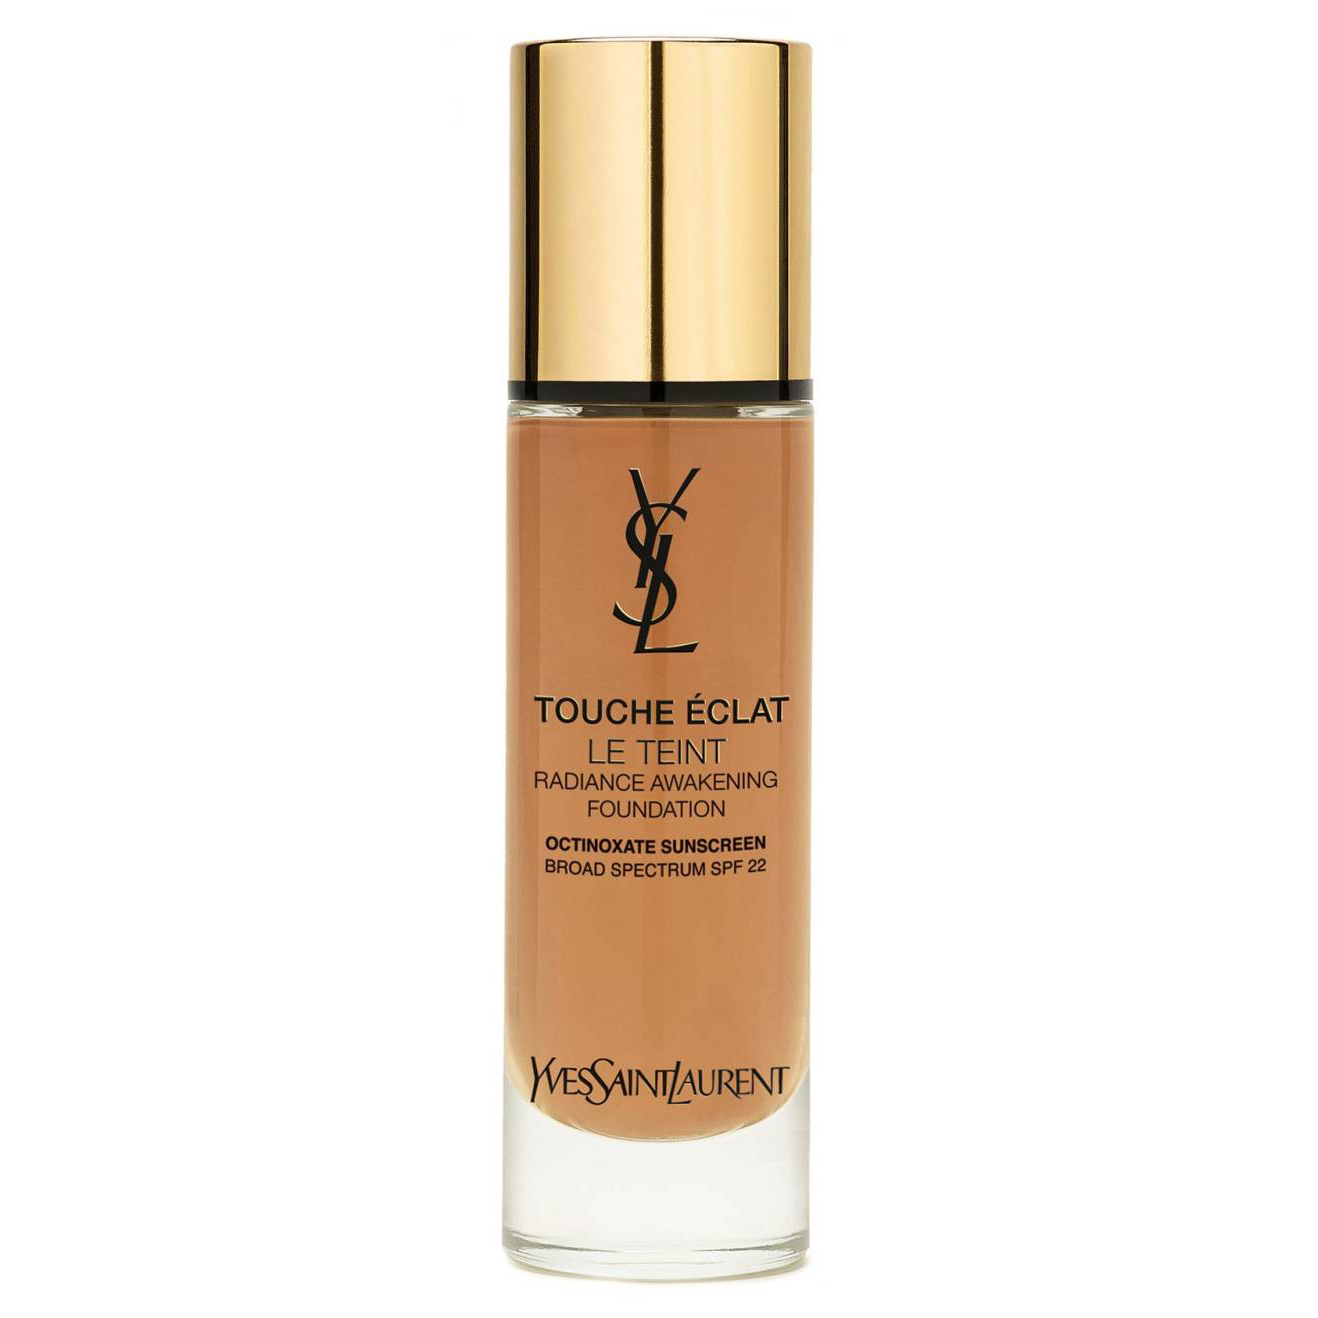 Touche Éclat Le Teint Radiance Awakening Foundation SPF 22